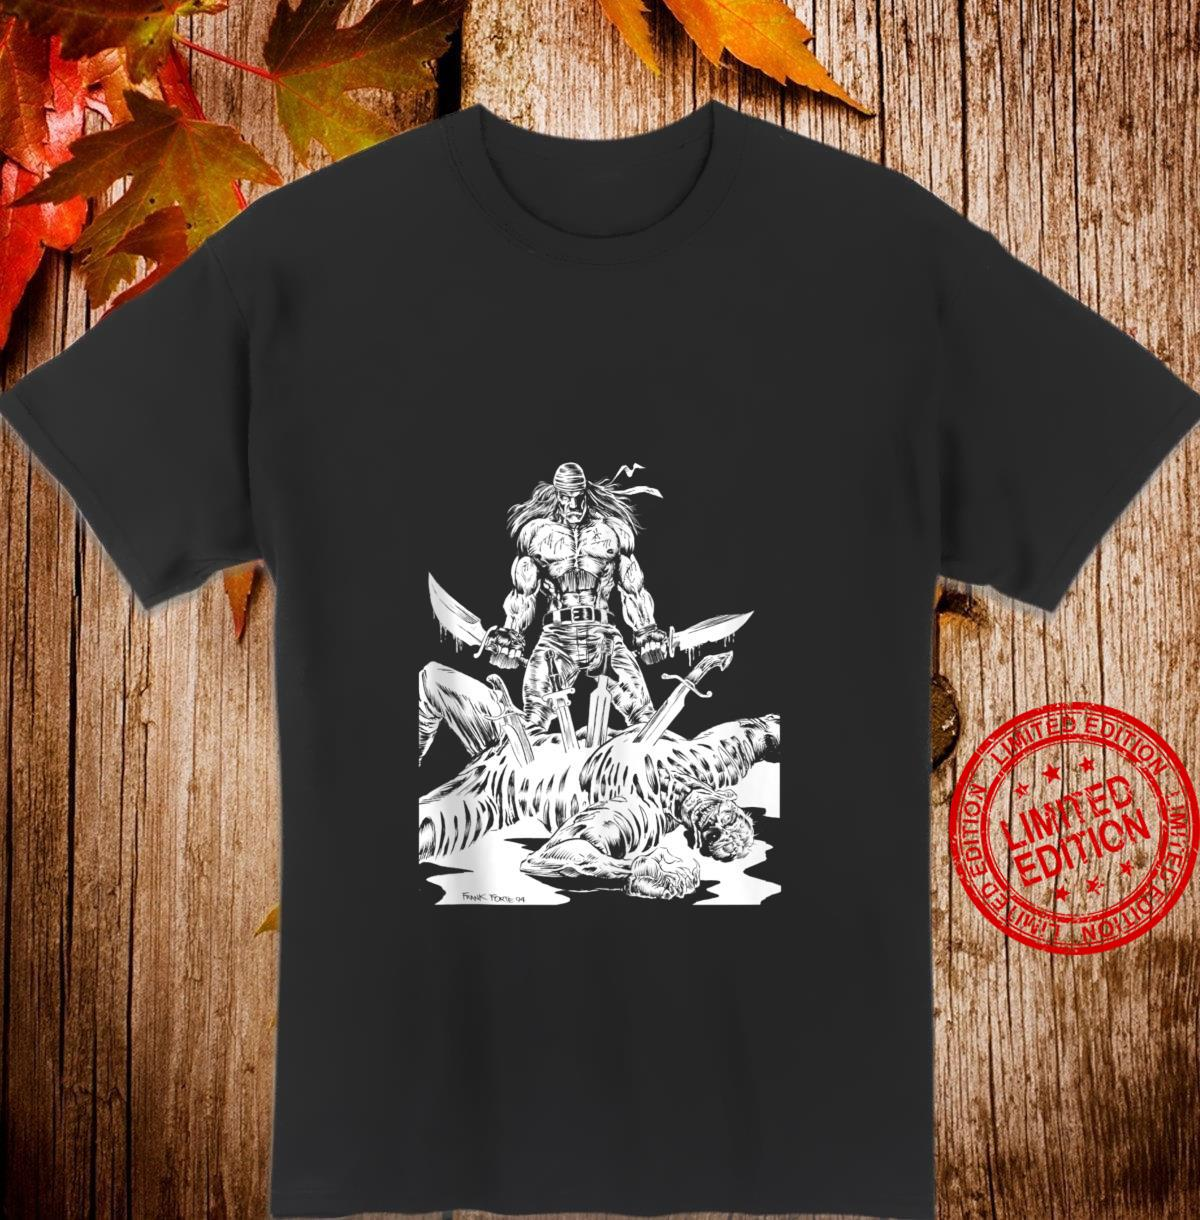 KNIFE MAN Vintage Zombies Undead Illustrated Horror Shirt